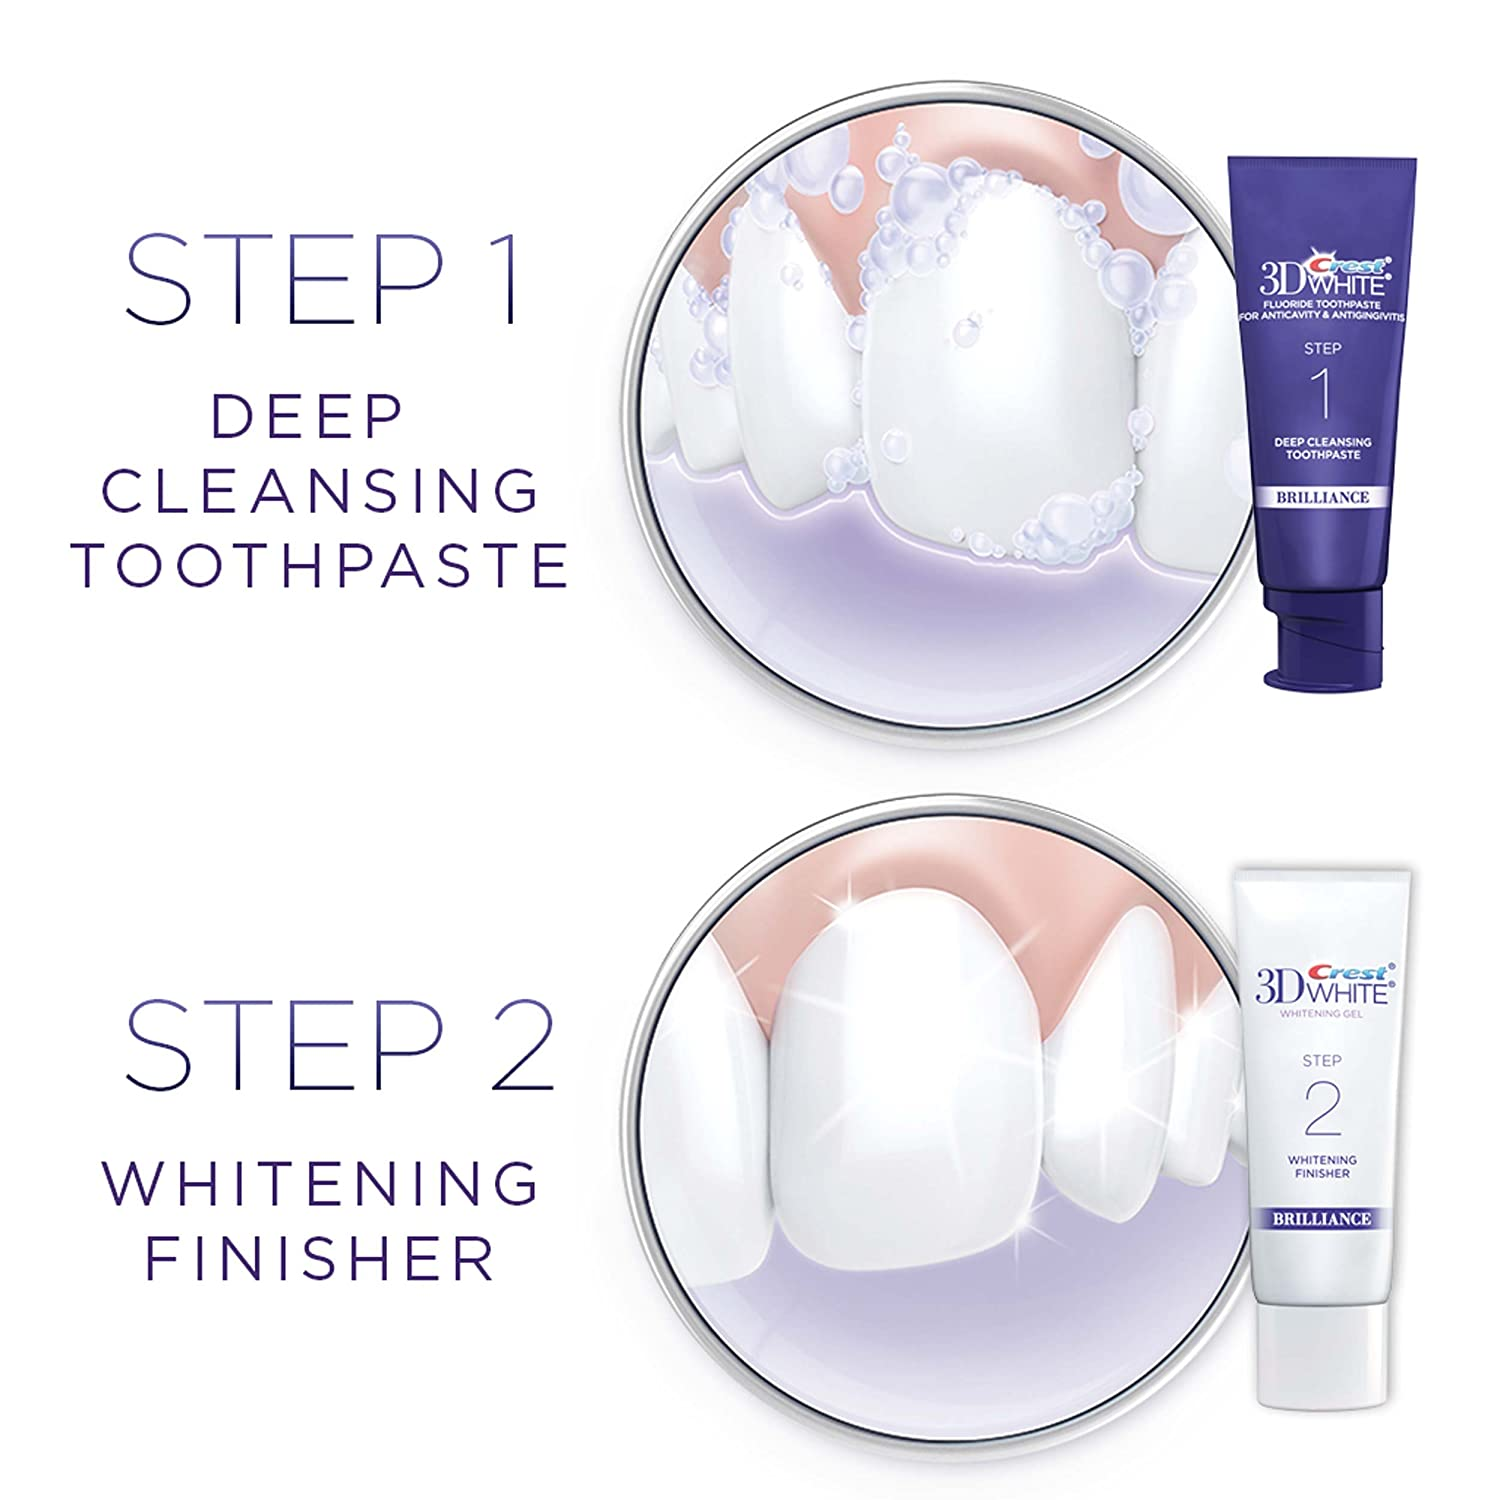 Crest 2 step toothpaste reviews